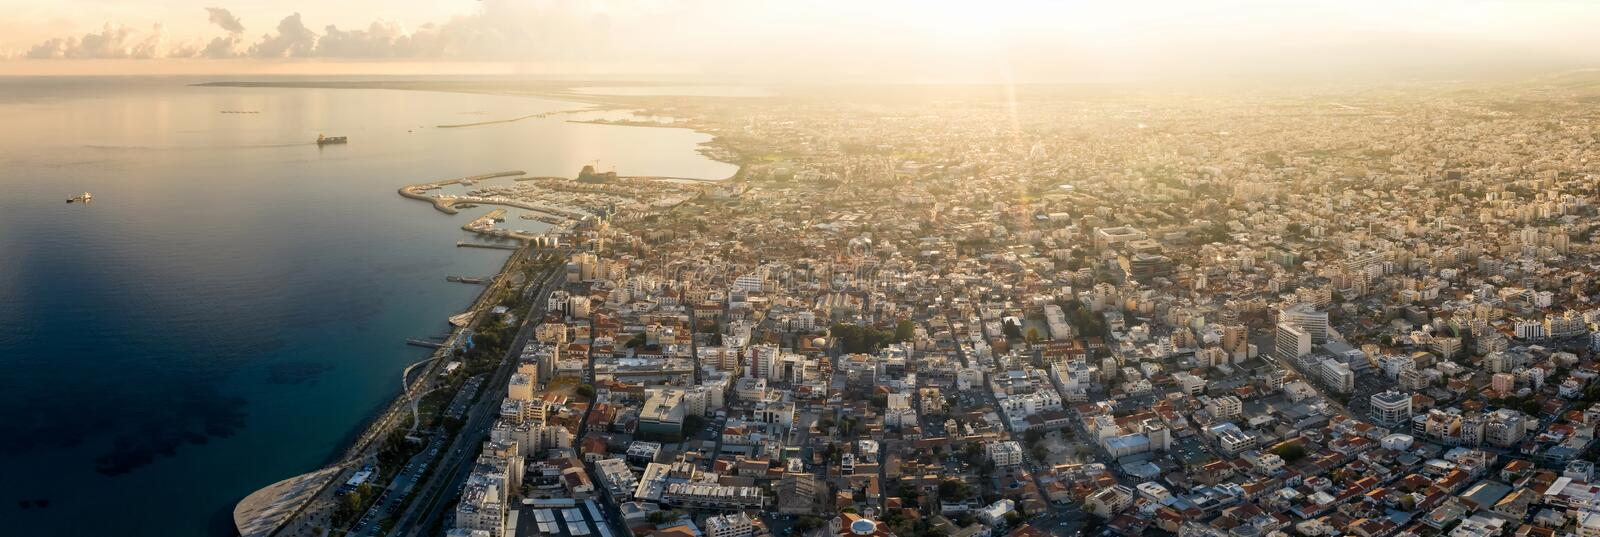 Limassol cityscape, Panoramic view. Cyprus royalty free stock photo